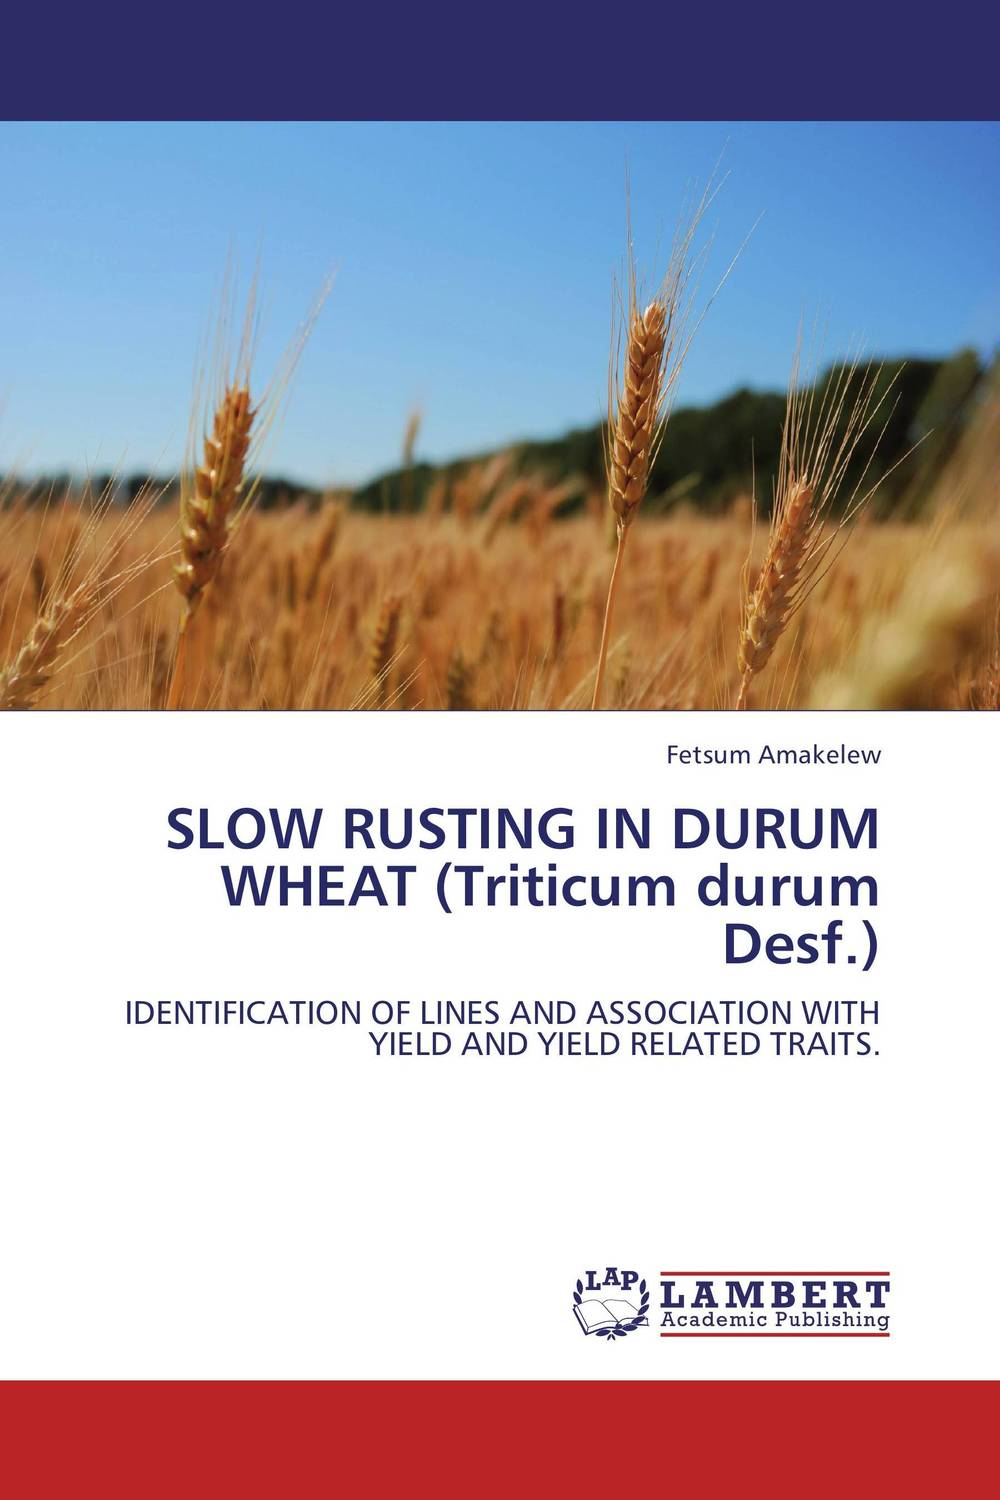 SLOW RUSTING IN DURUM WHEAT (Triticum durum Desf.) genetic variation for stem rust resistance in spring wheat